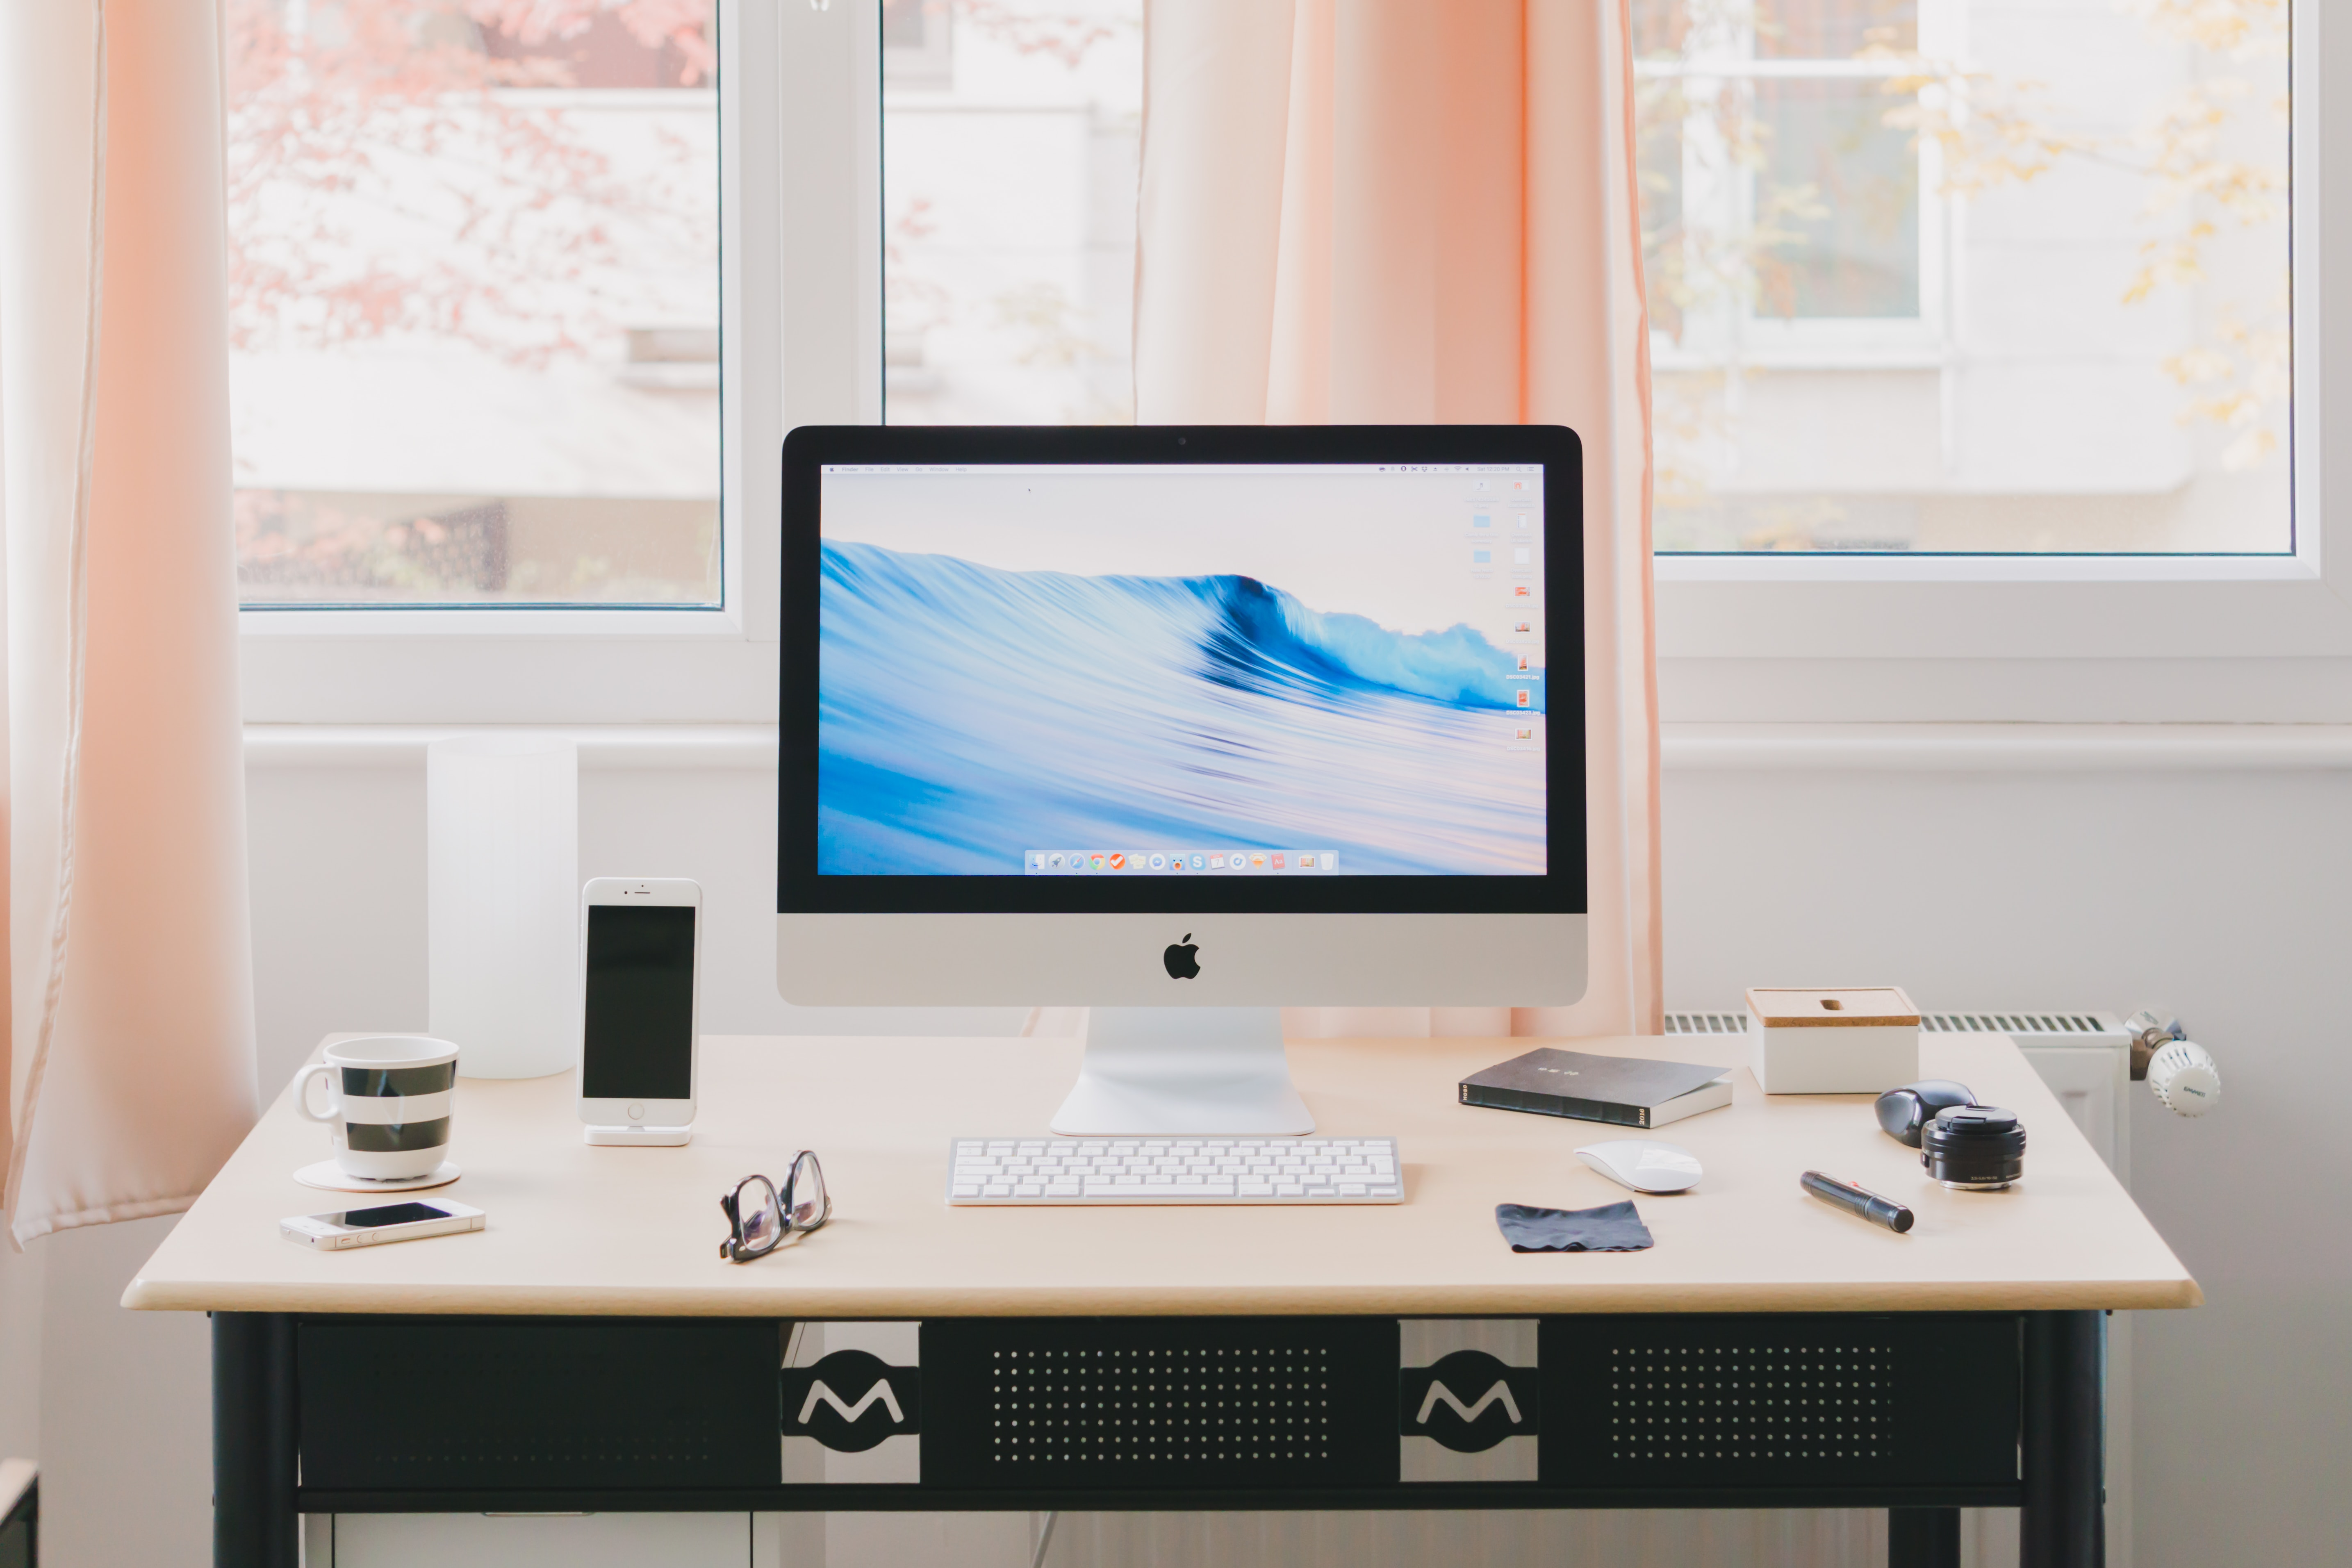 How to Rejuvenate a Hopelessly Cluttered Office